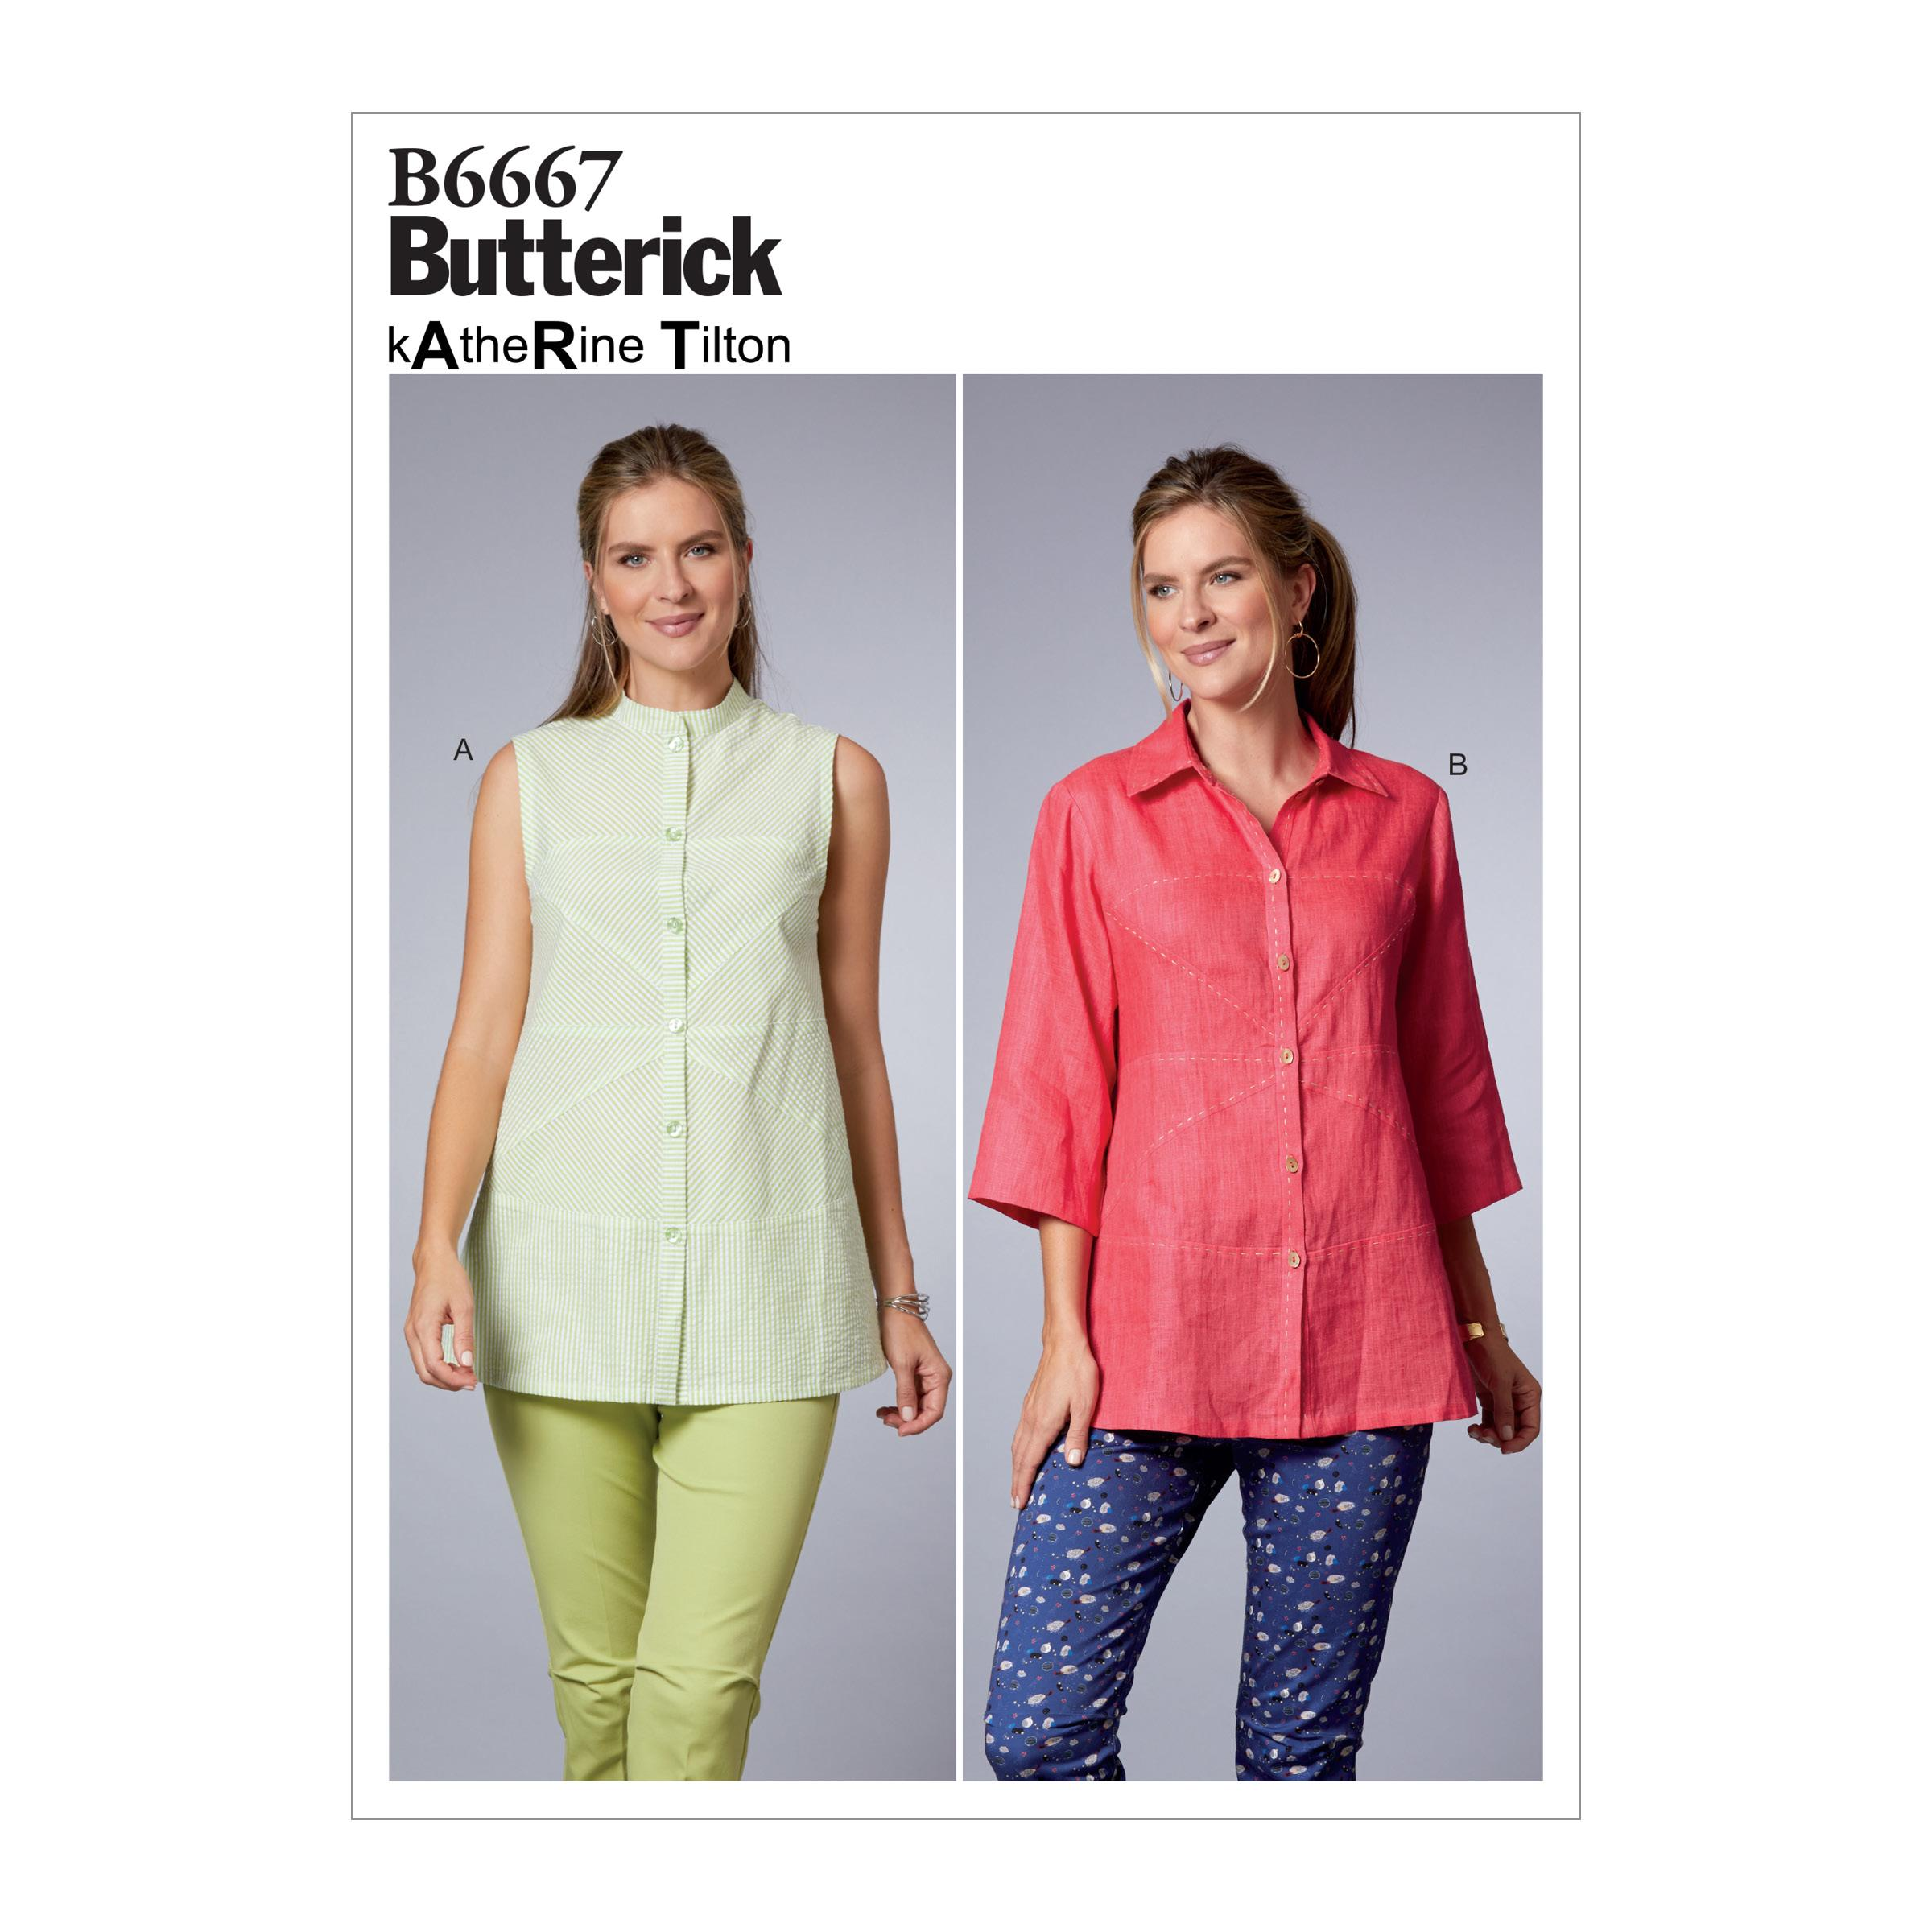 Butterick B6667 Misses' Top